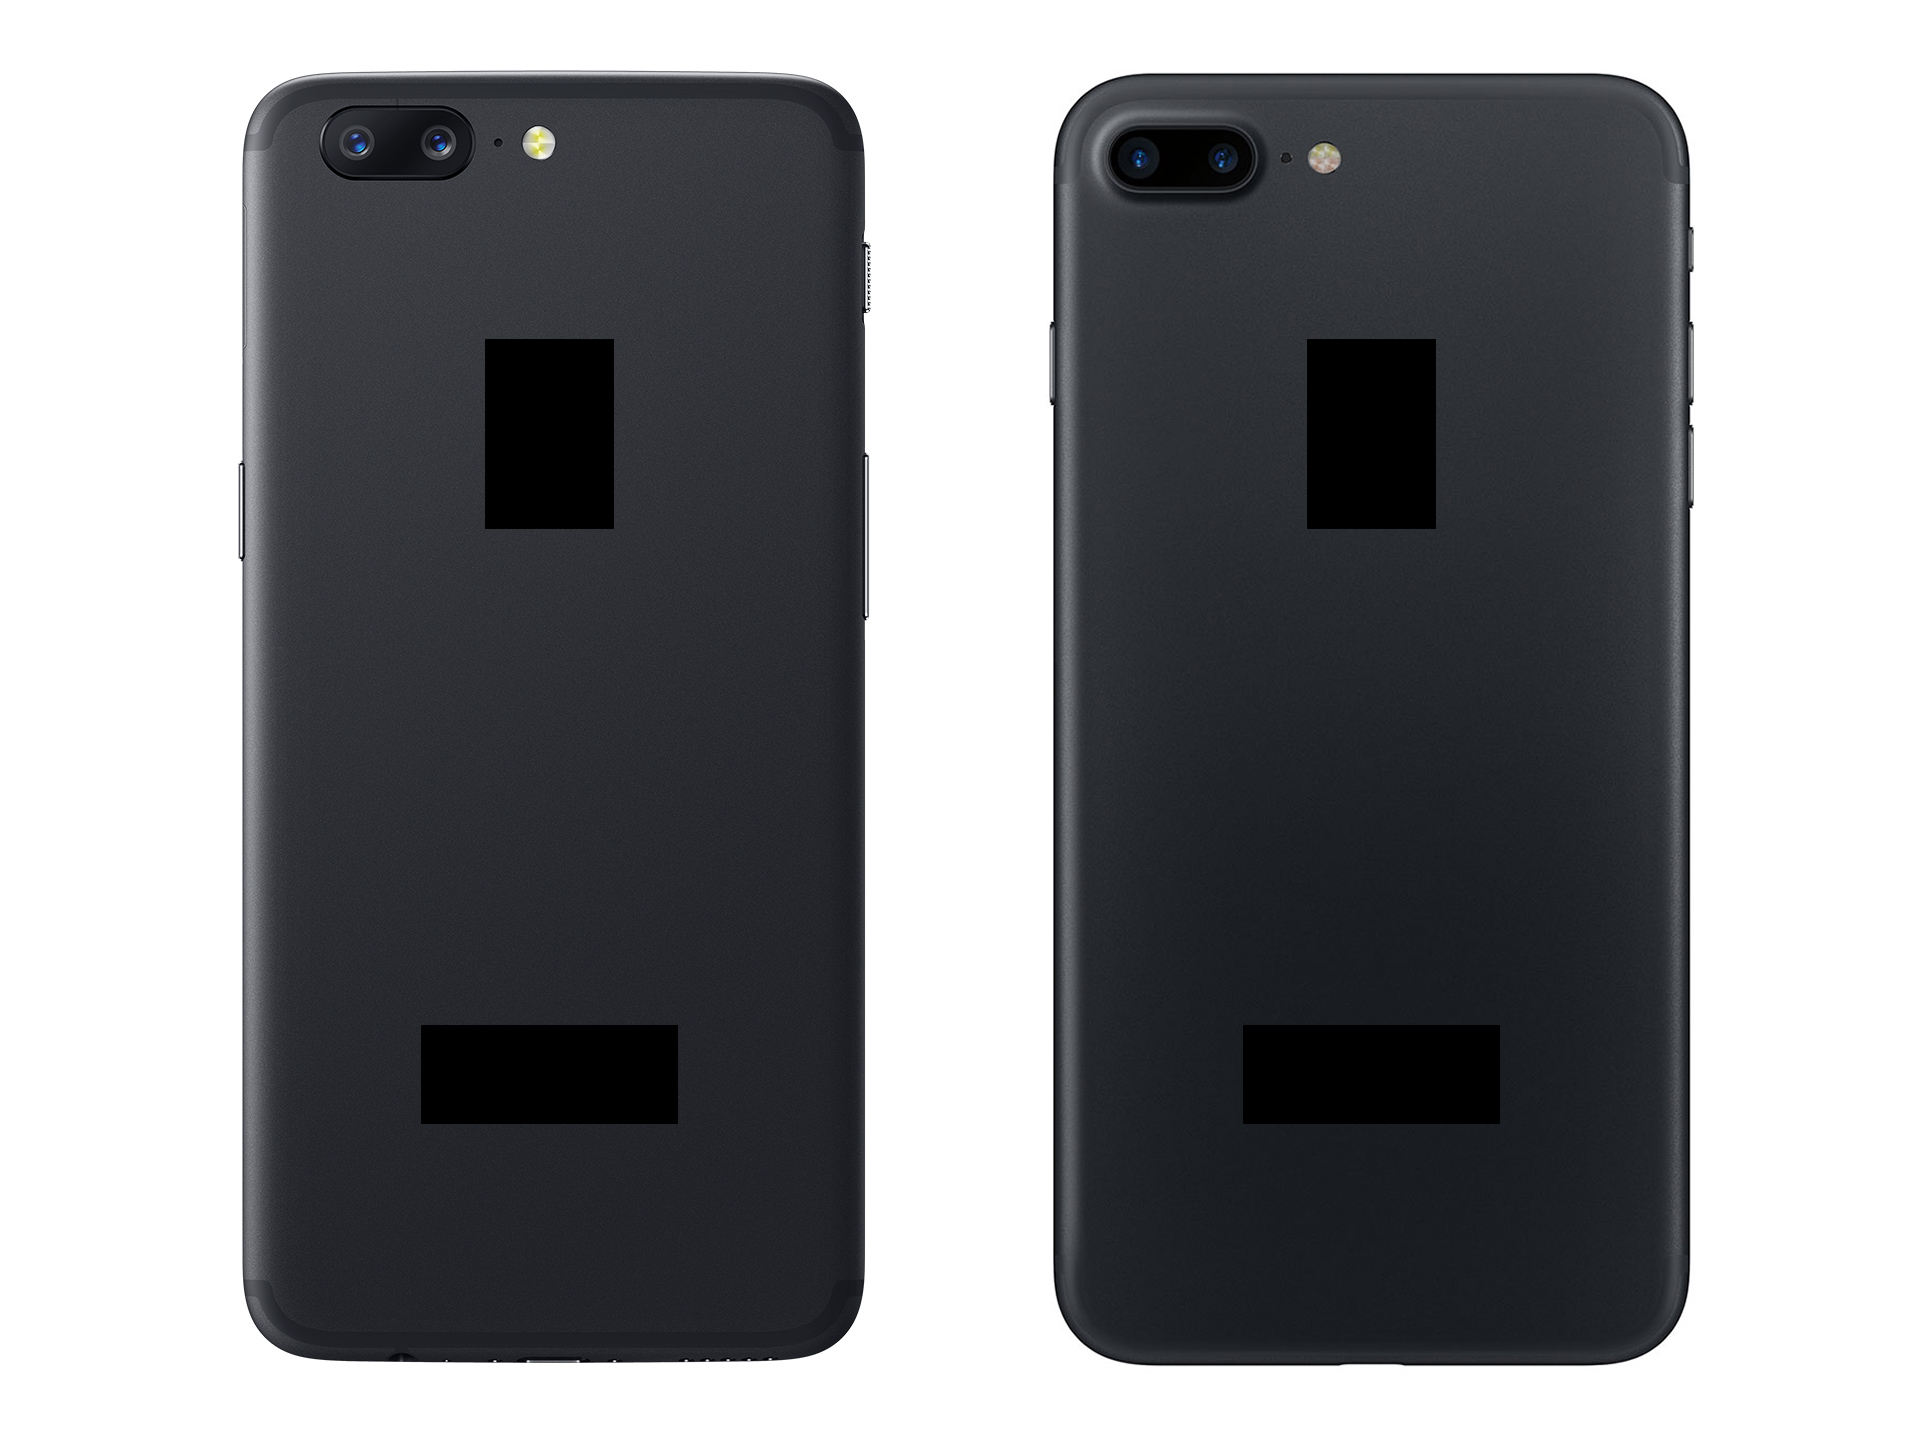 Pop Quiz: Which one is an iPhone, and which is the OnePlus 5?